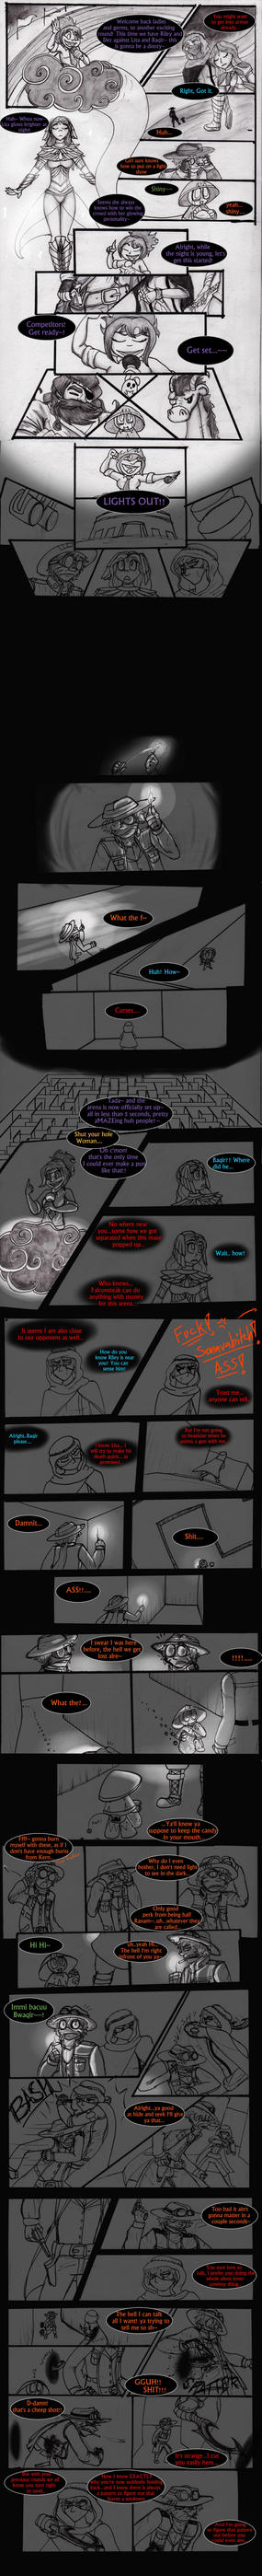 FT: Round 4: page 2 by SpunkyTruffles